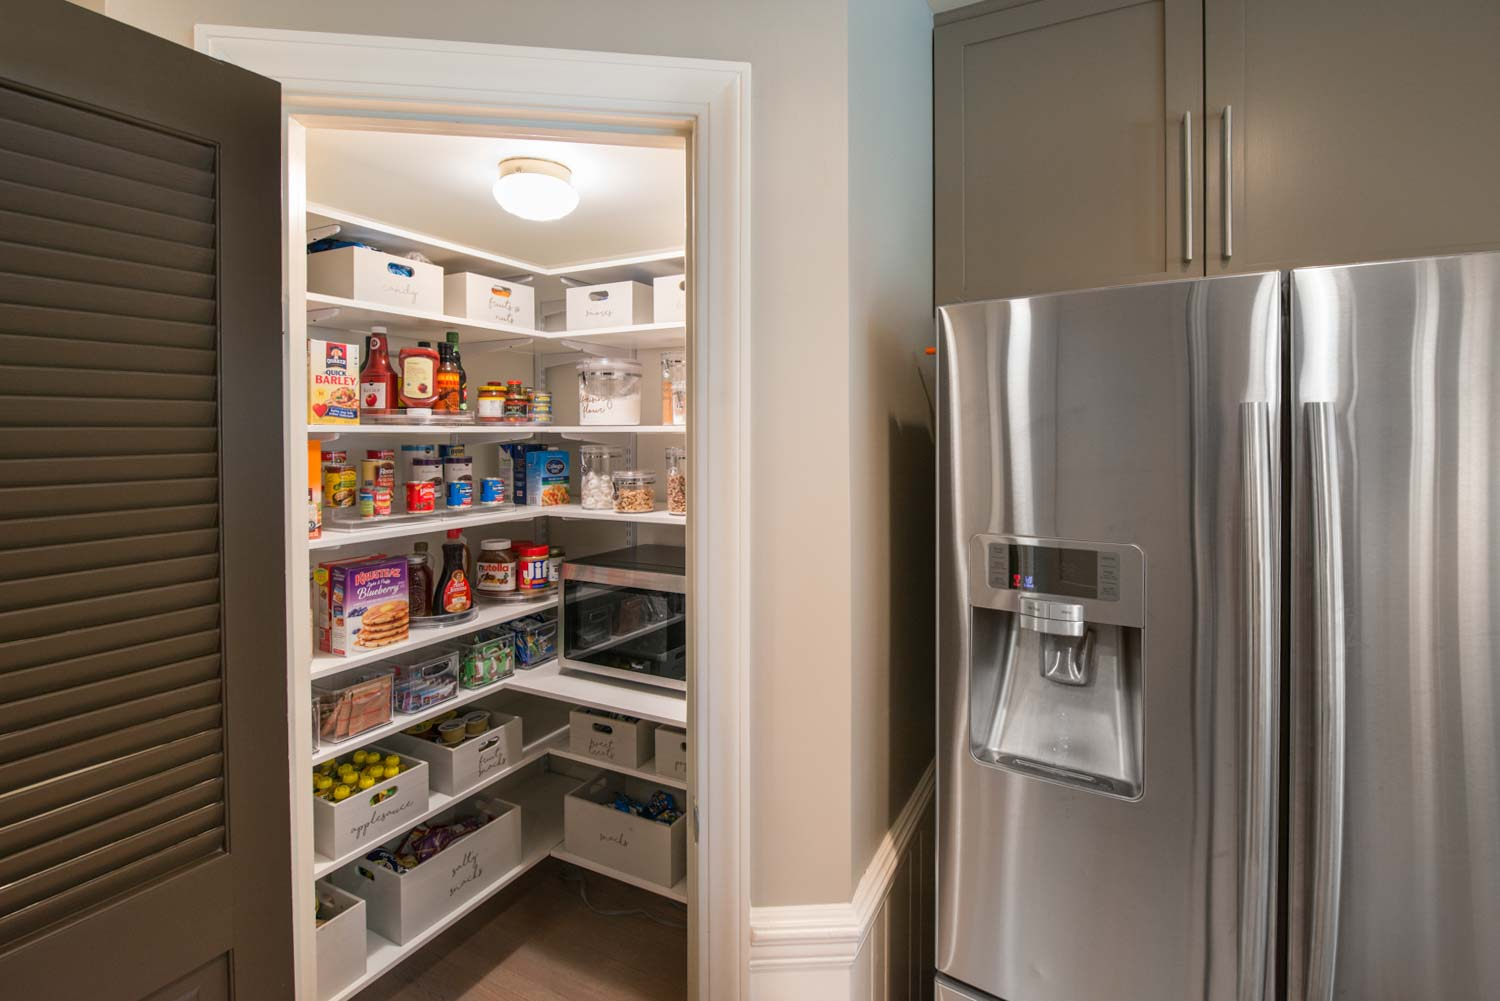 closets pantrys aren saskatoon t your granny closet s these pantry modern pantries kitchen